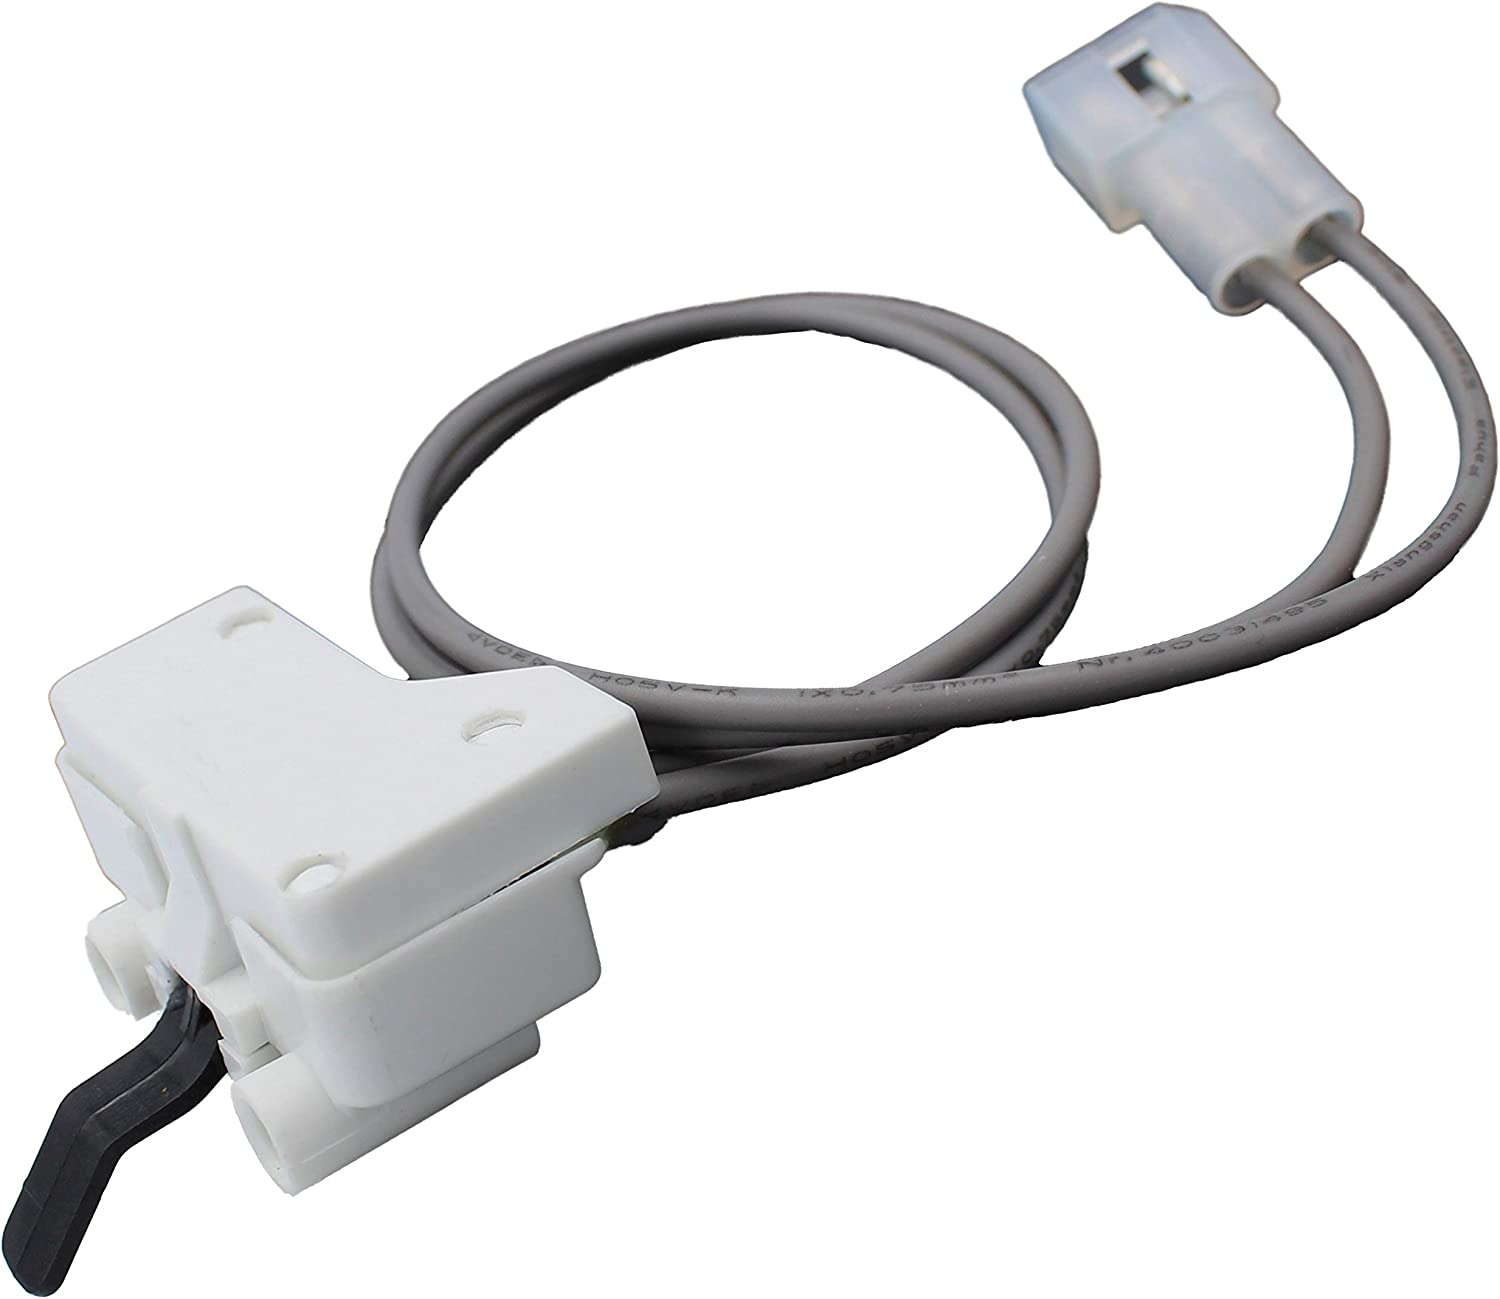 Supplying Demand 3406108 Dryer Door Switch Fits AP6008562 3406108 PS11741702 Compatible With Whirlpool